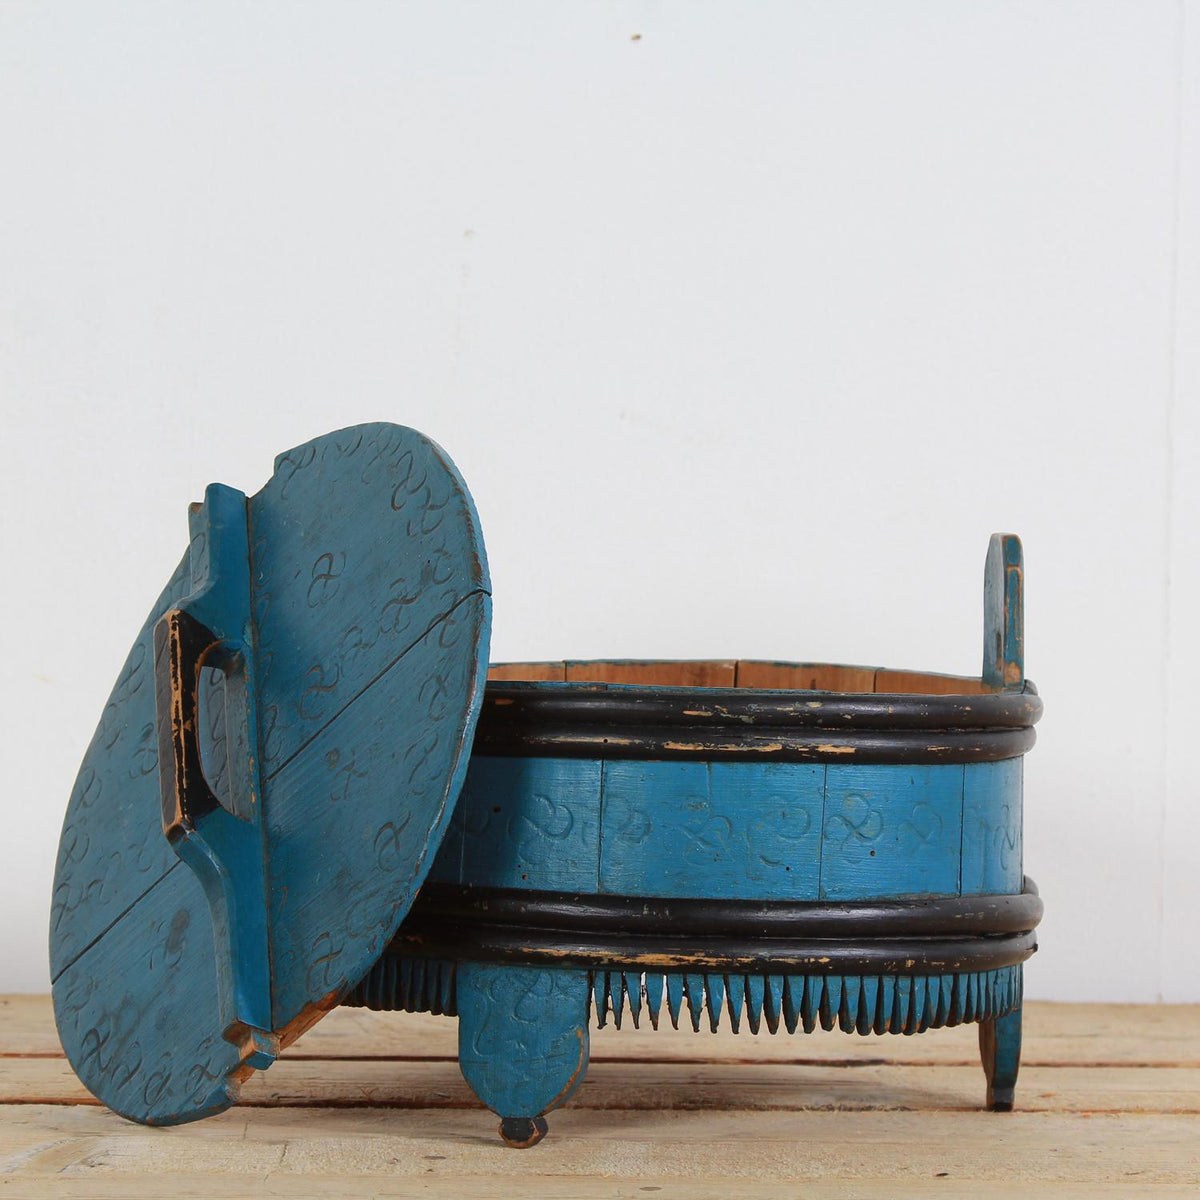 Scandinavian 19thC Folk Art Porridge Pot in Original Blue Paint